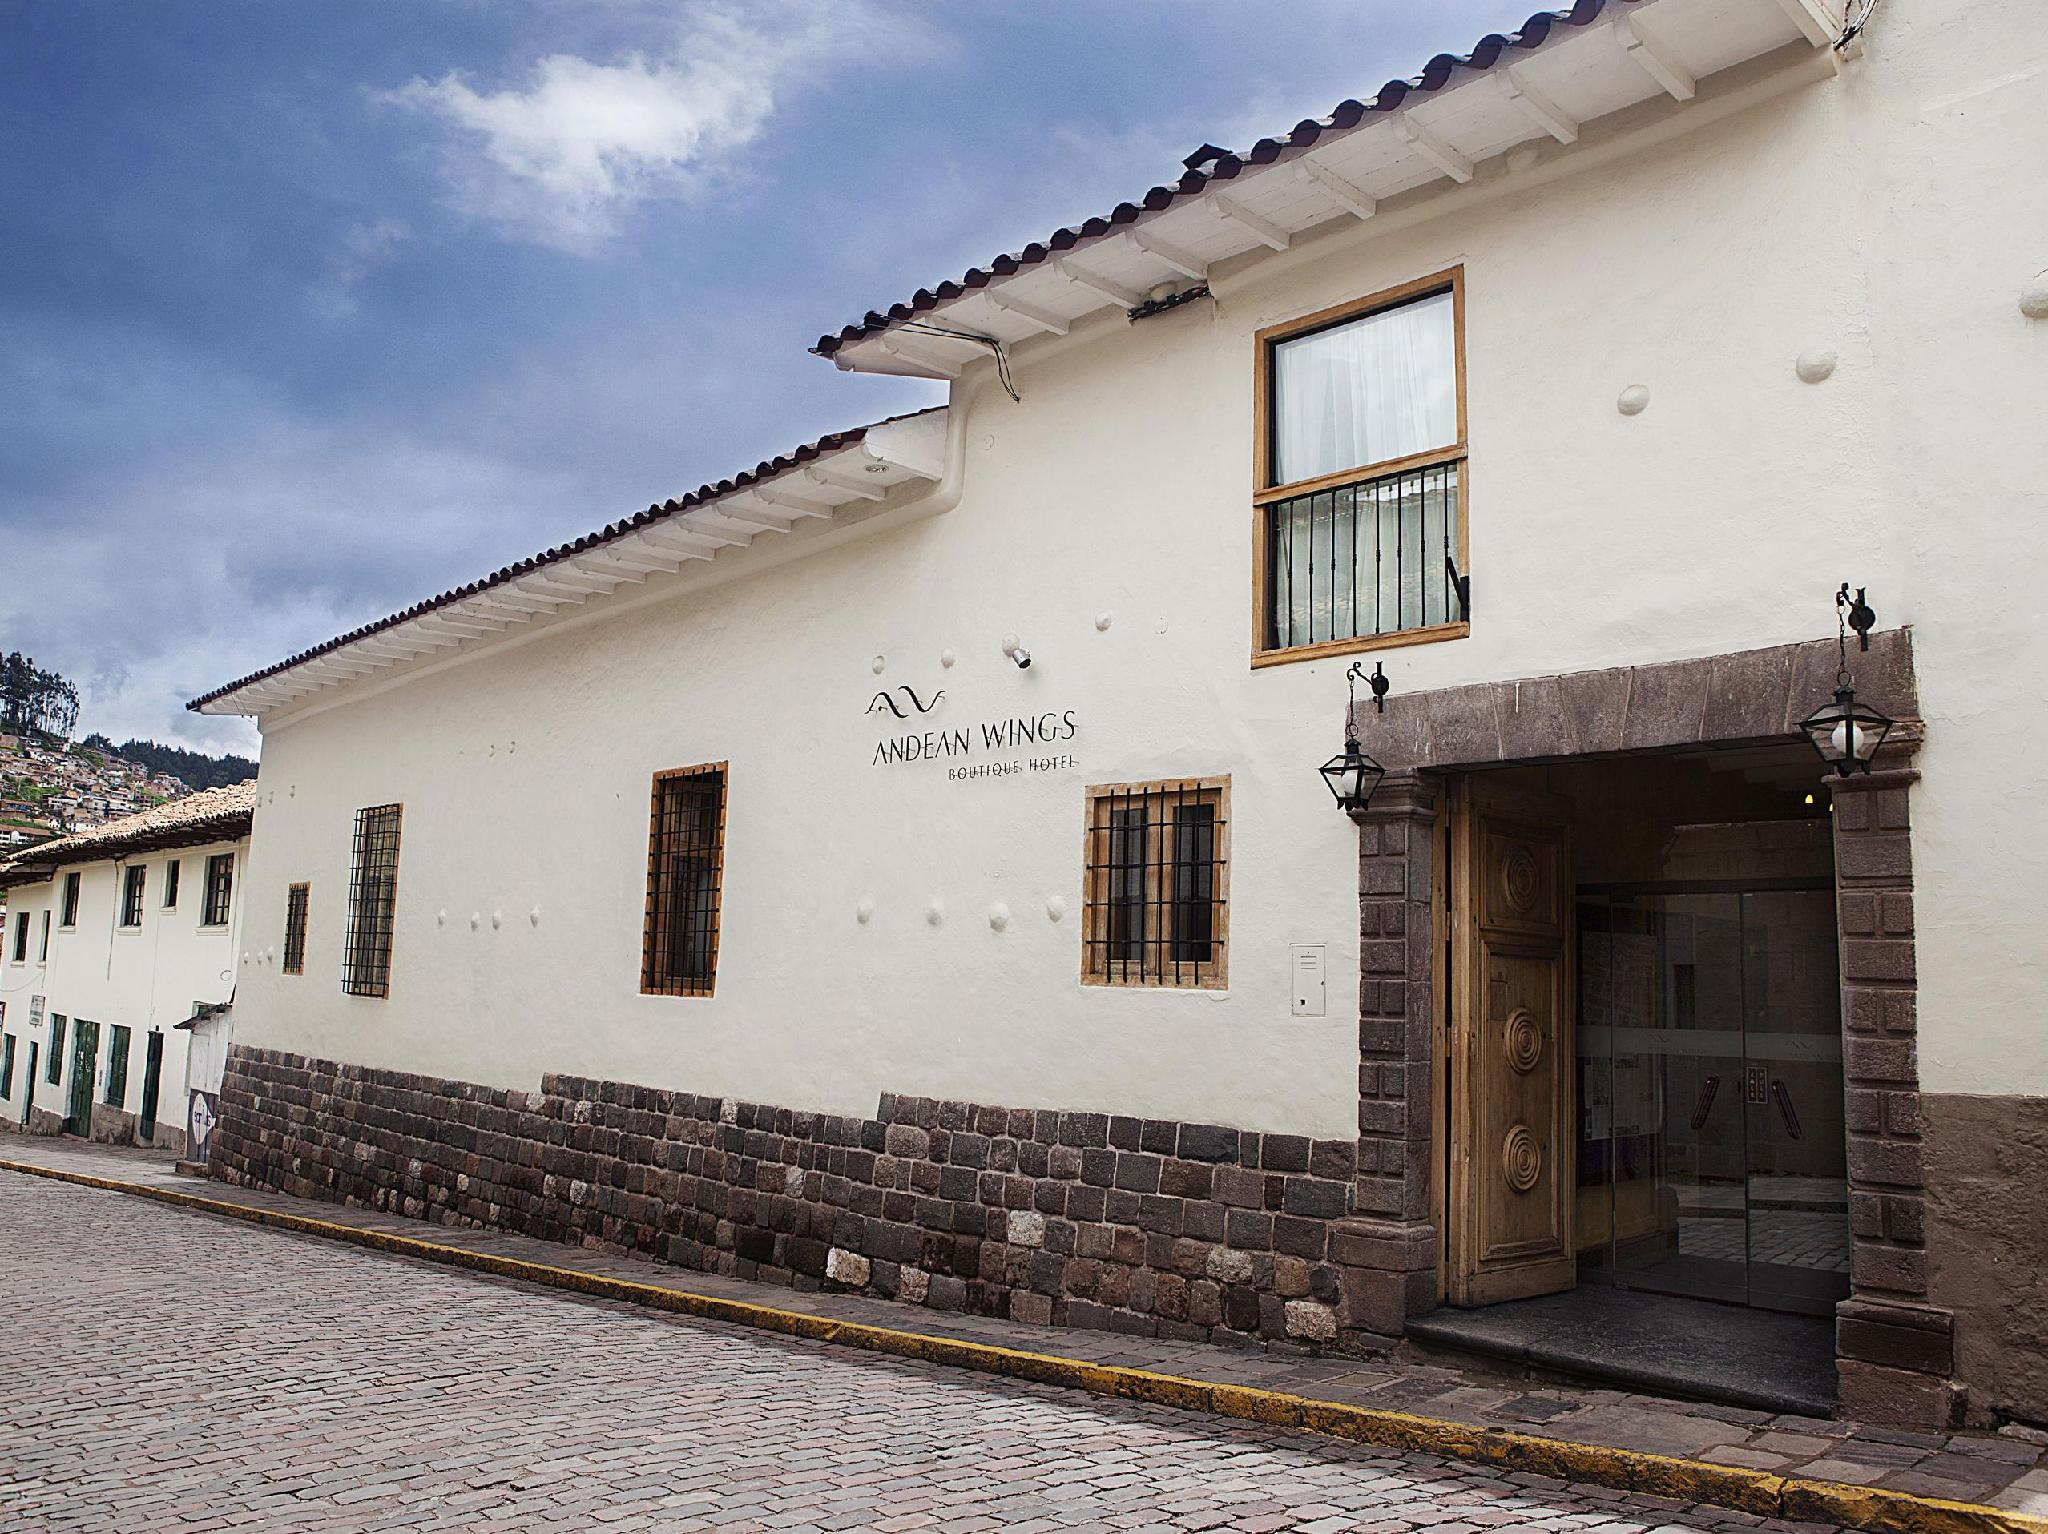 Andean Wings Boutique Hotel - Hotell och Boende i Peru i Sydamerika